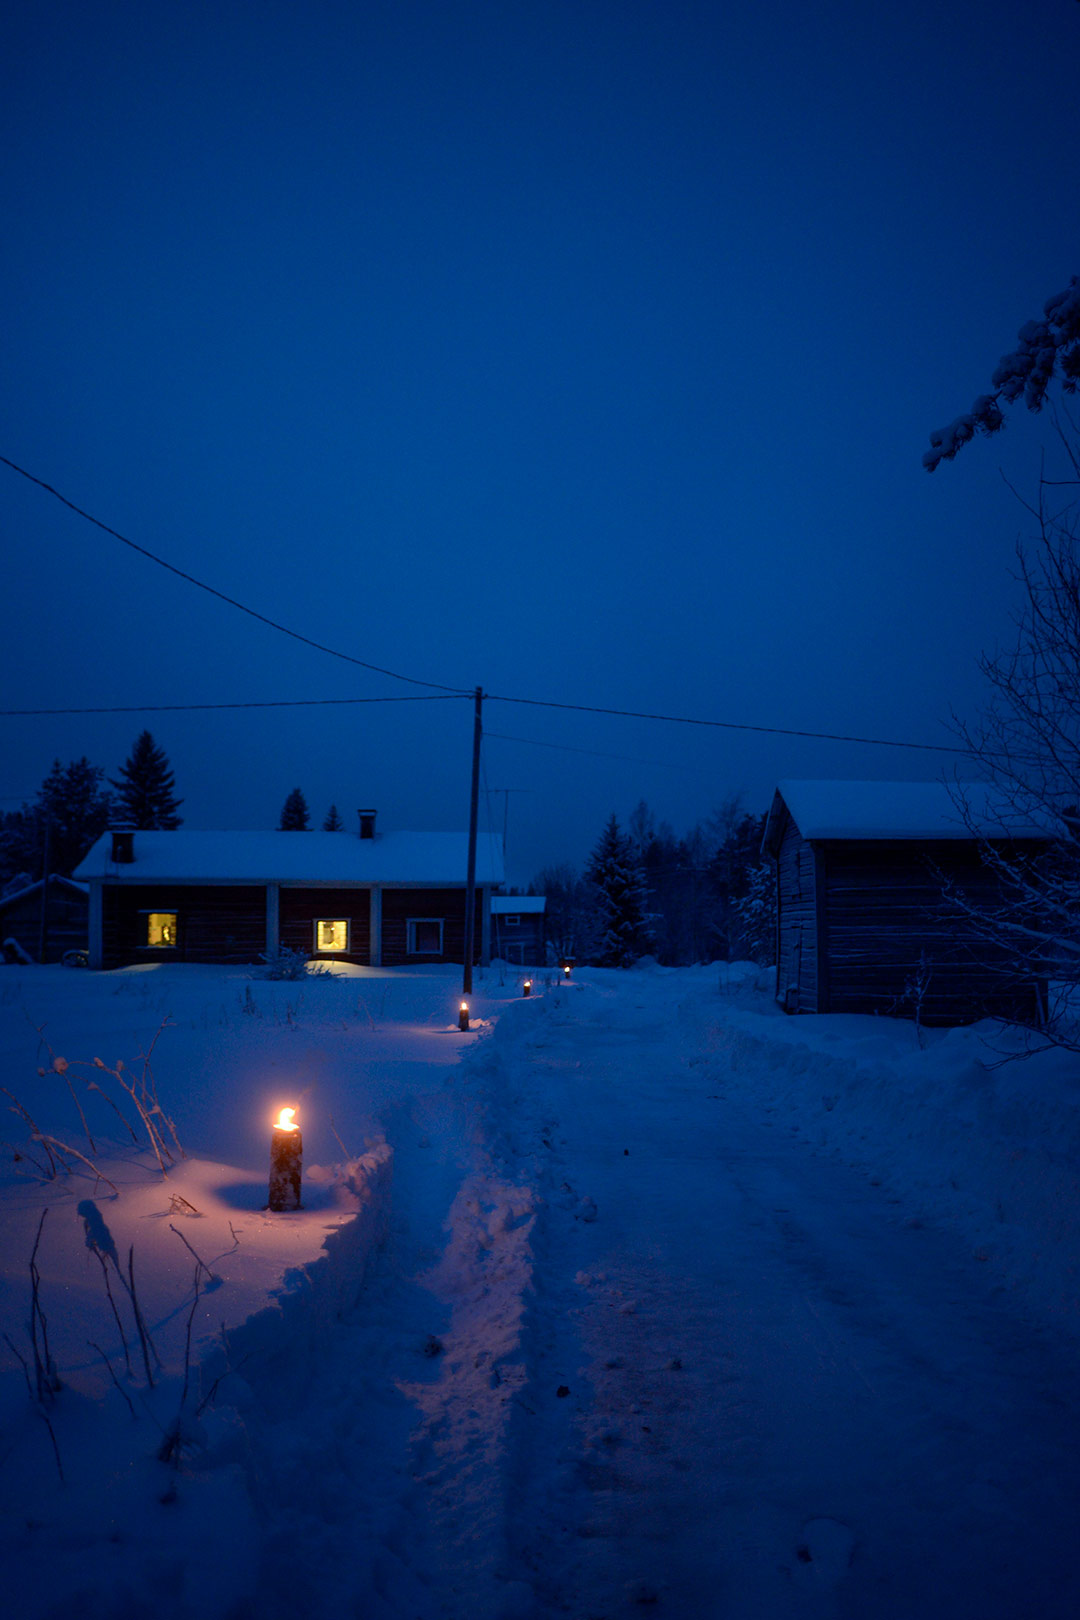 Winter lights on the countryside